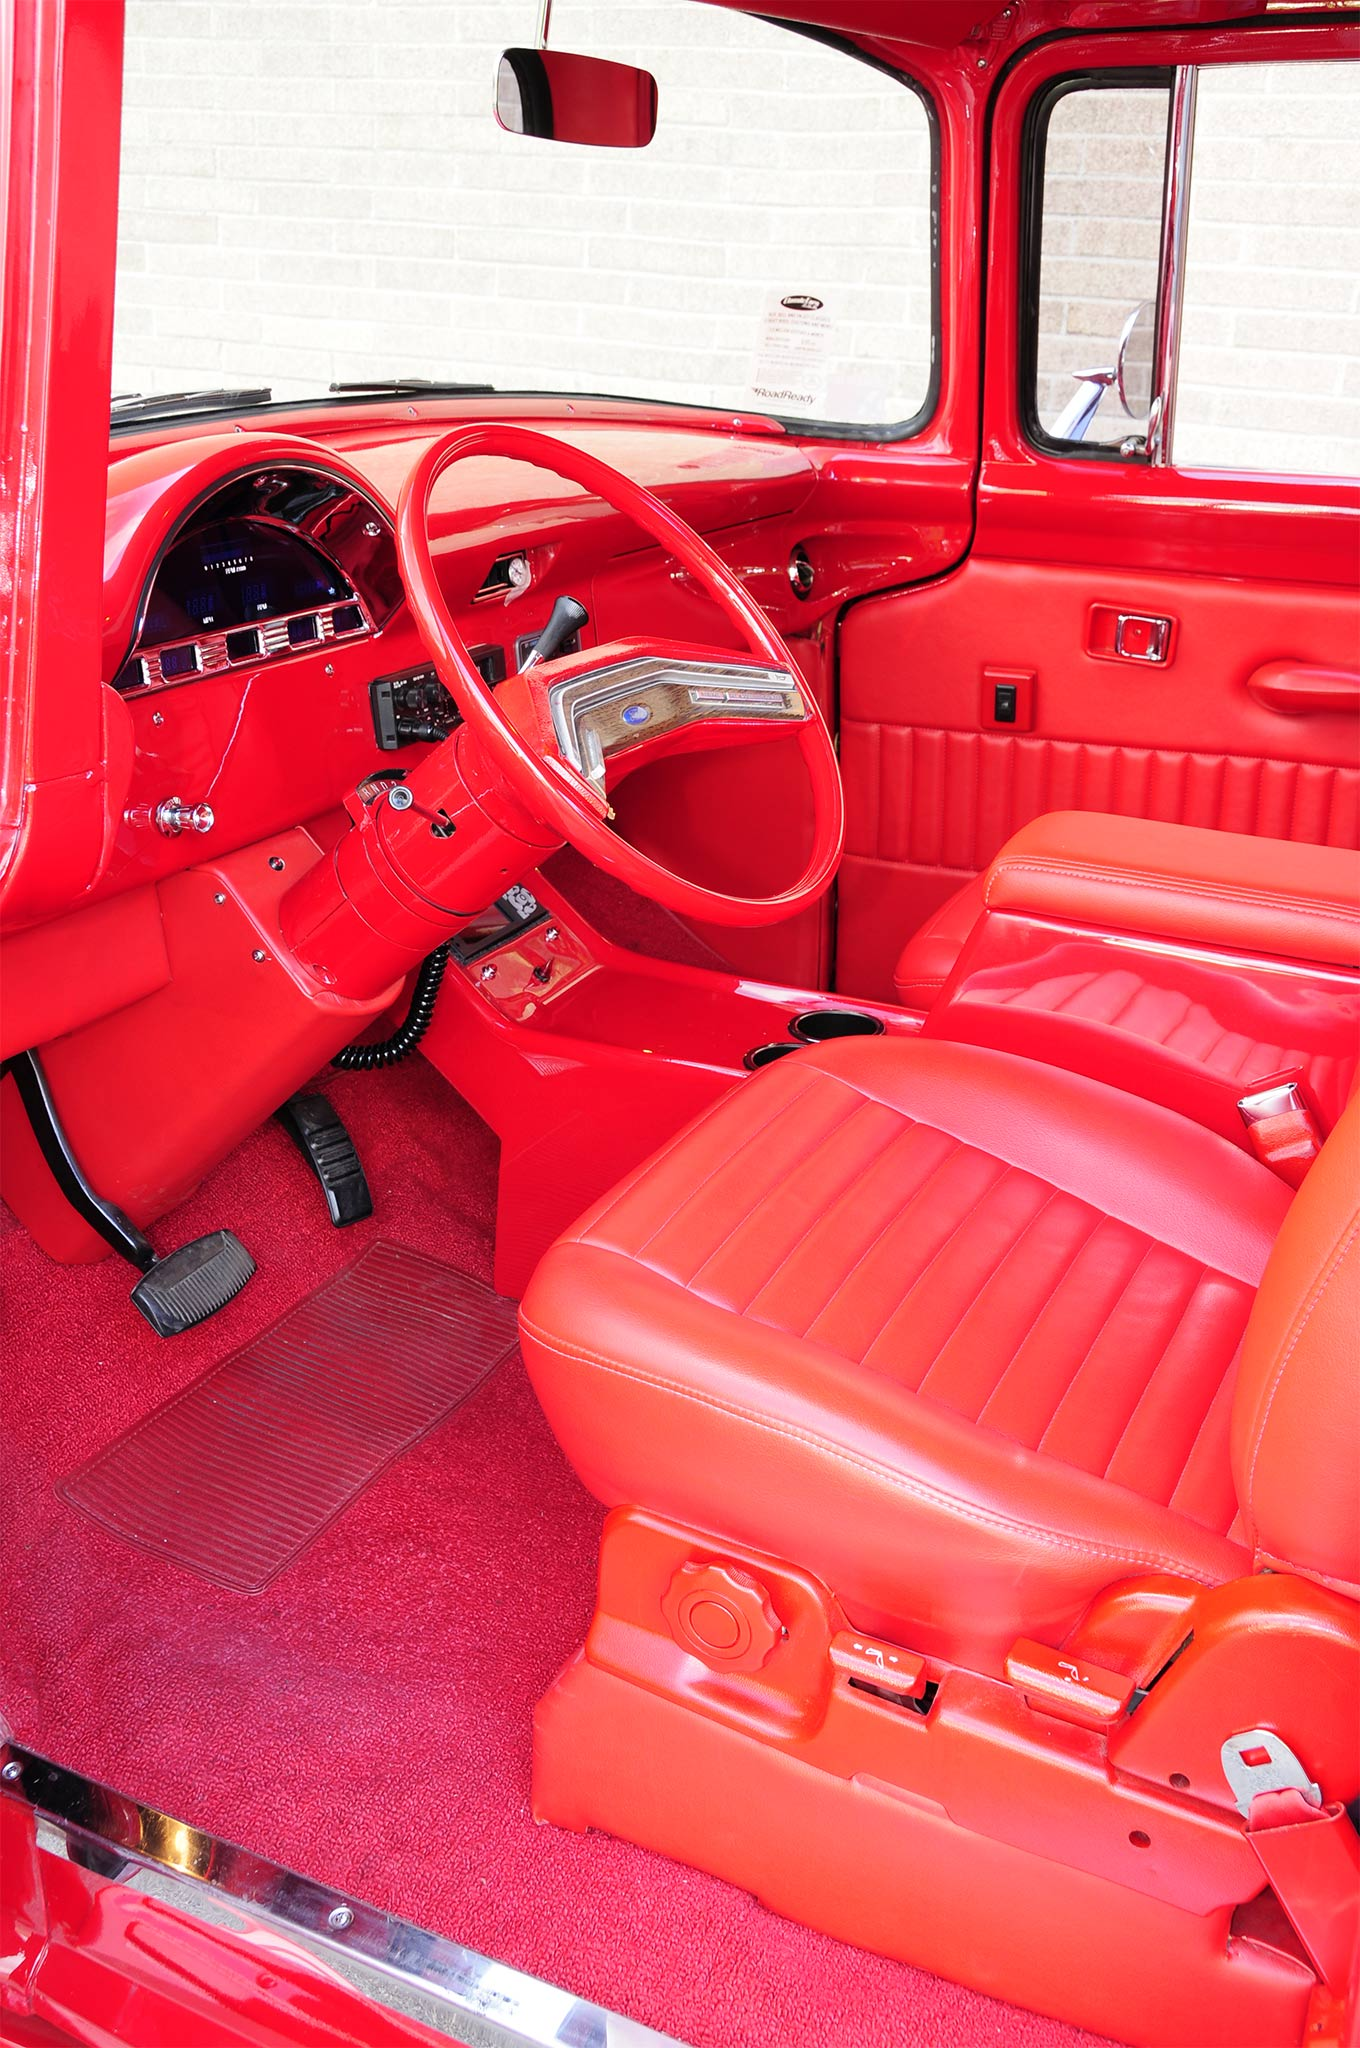 For plenty of comfort a set of Ford Ranger buckets were recovered in pleated red vinyl with complimenting door panels and carpet while a custom fab'ed console fills the gap.